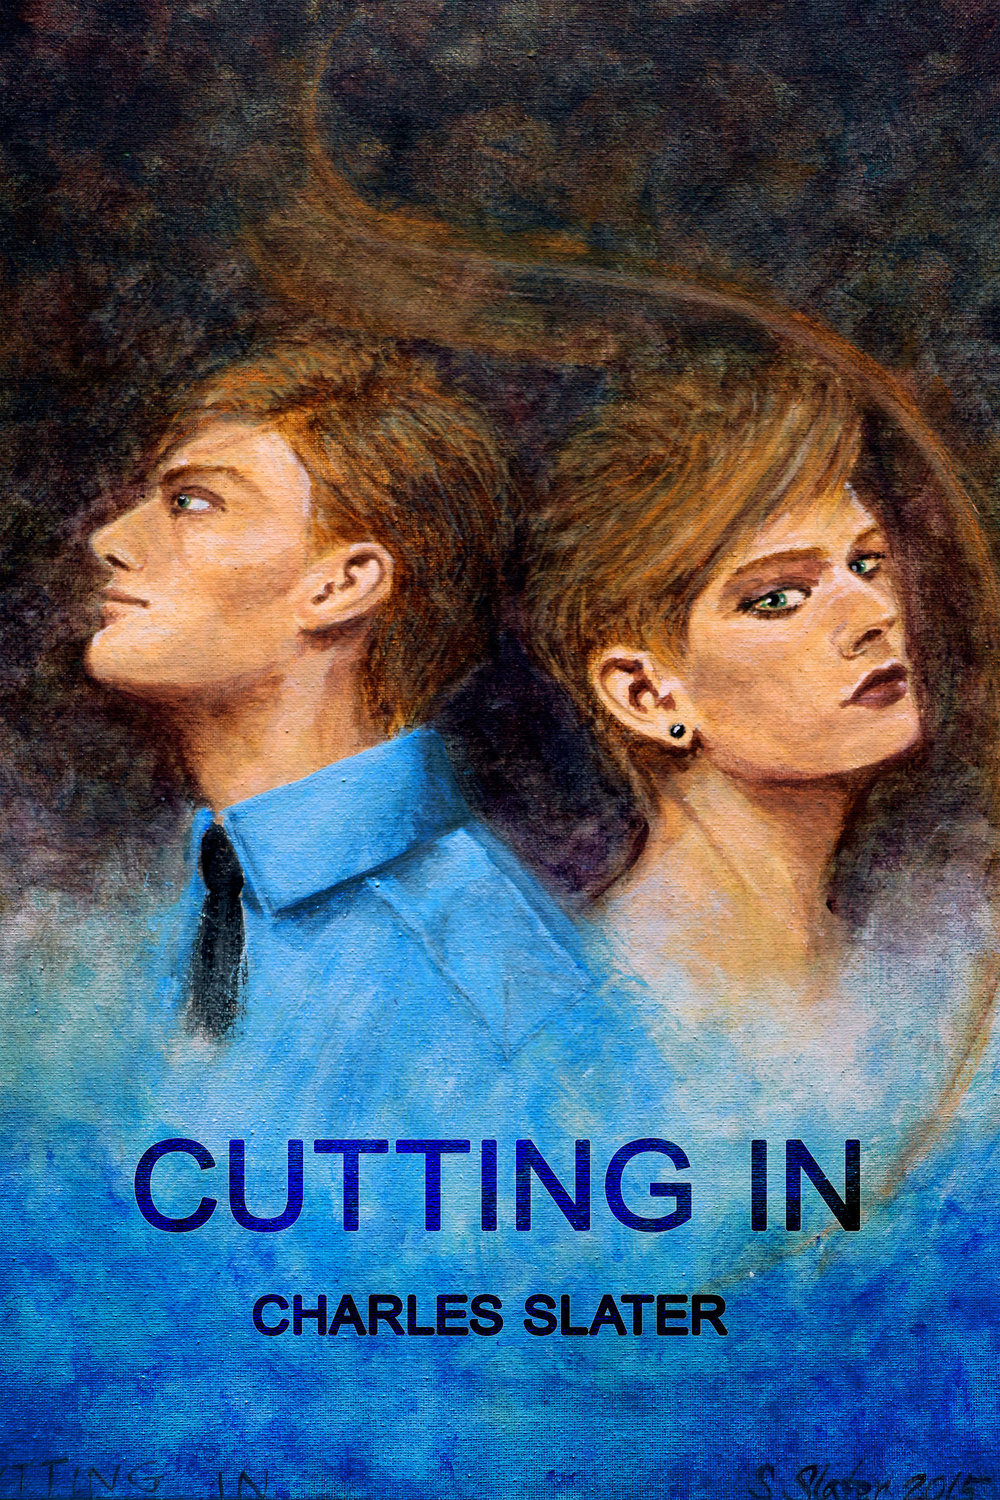 cutting-in-cover-shelley-slater-2015_web.jpg